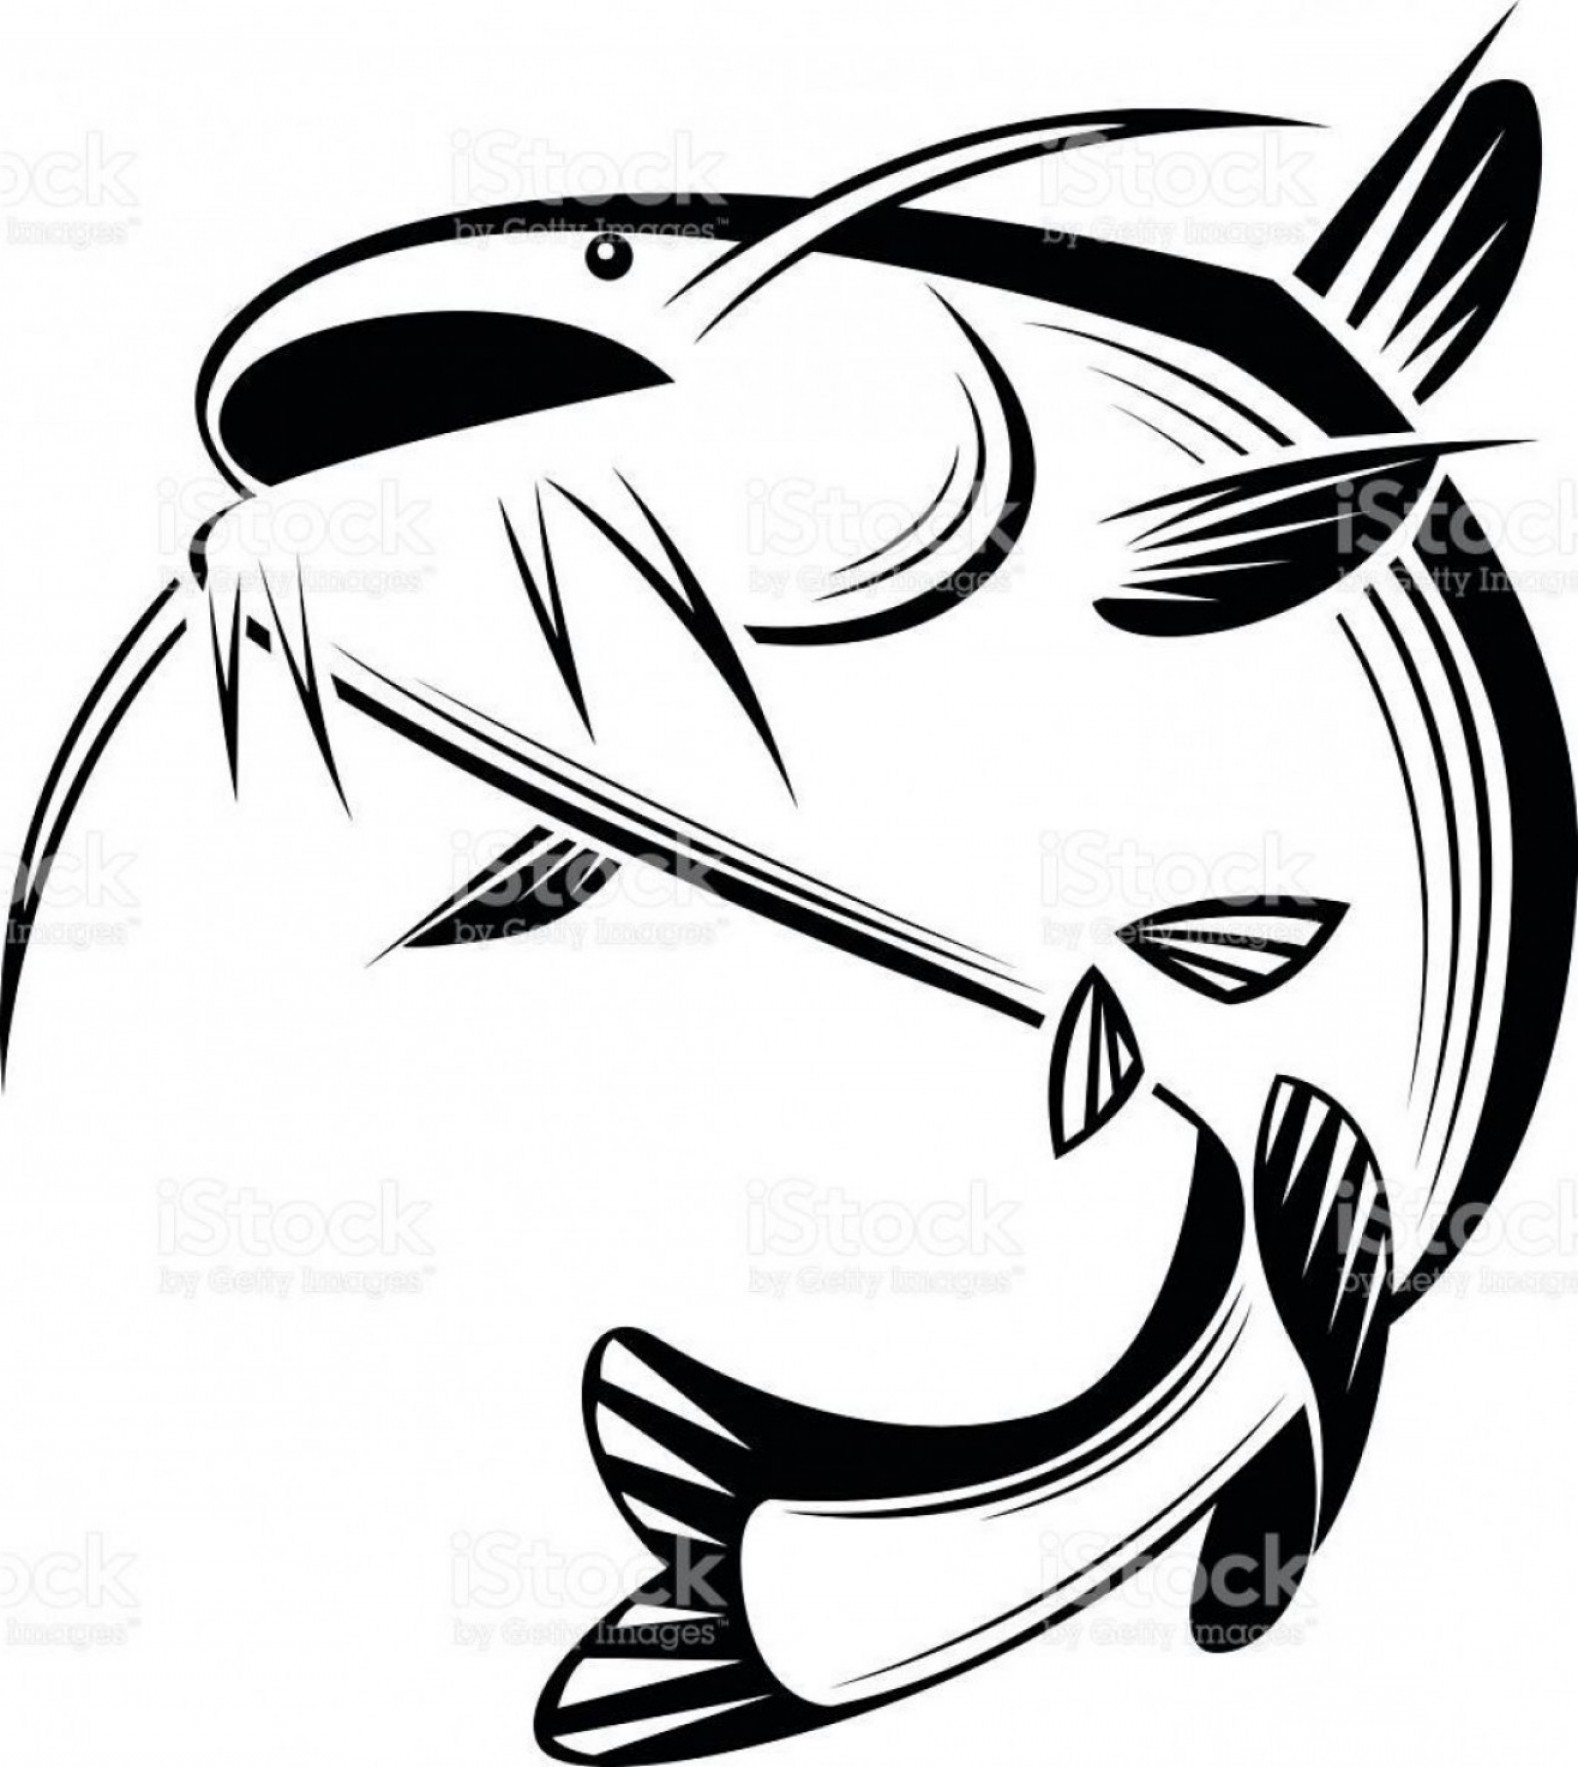 Catfish Vector Logo: Best Free Graphic Catfish Vector Cdr